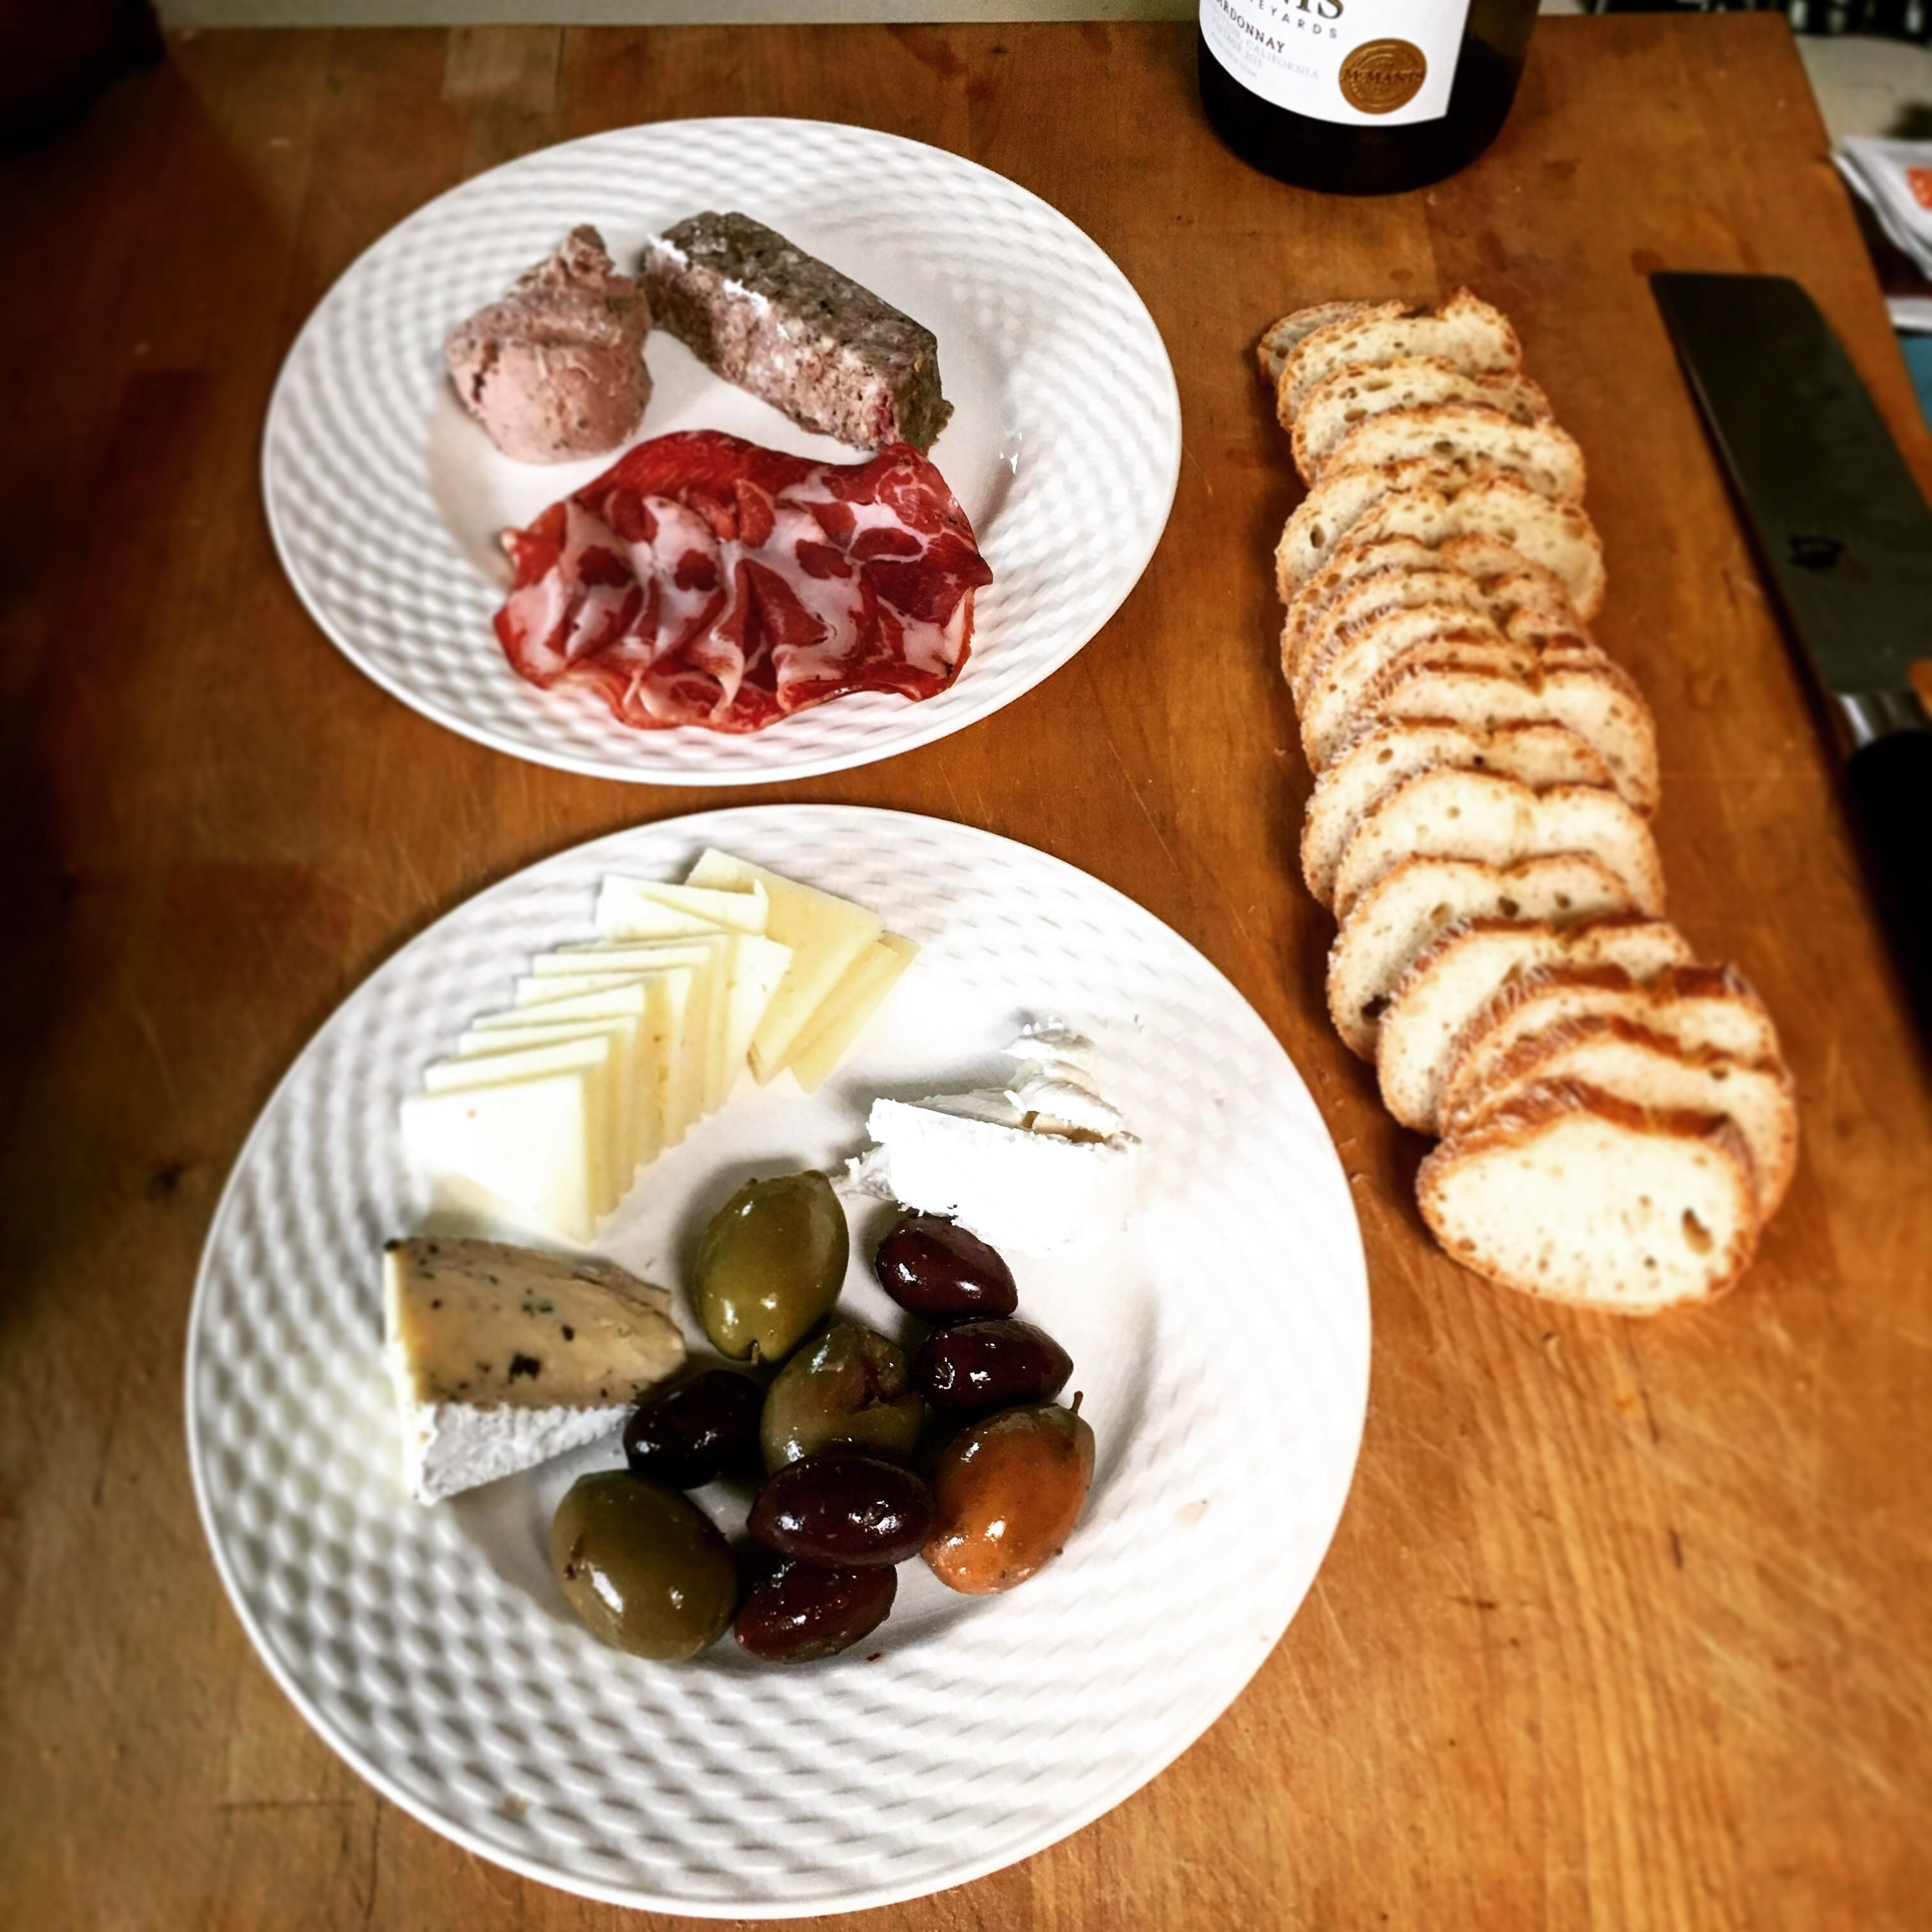 [Homemade] Charcuterie Plate Because Saturdays Are For Being Fancy #Recipes